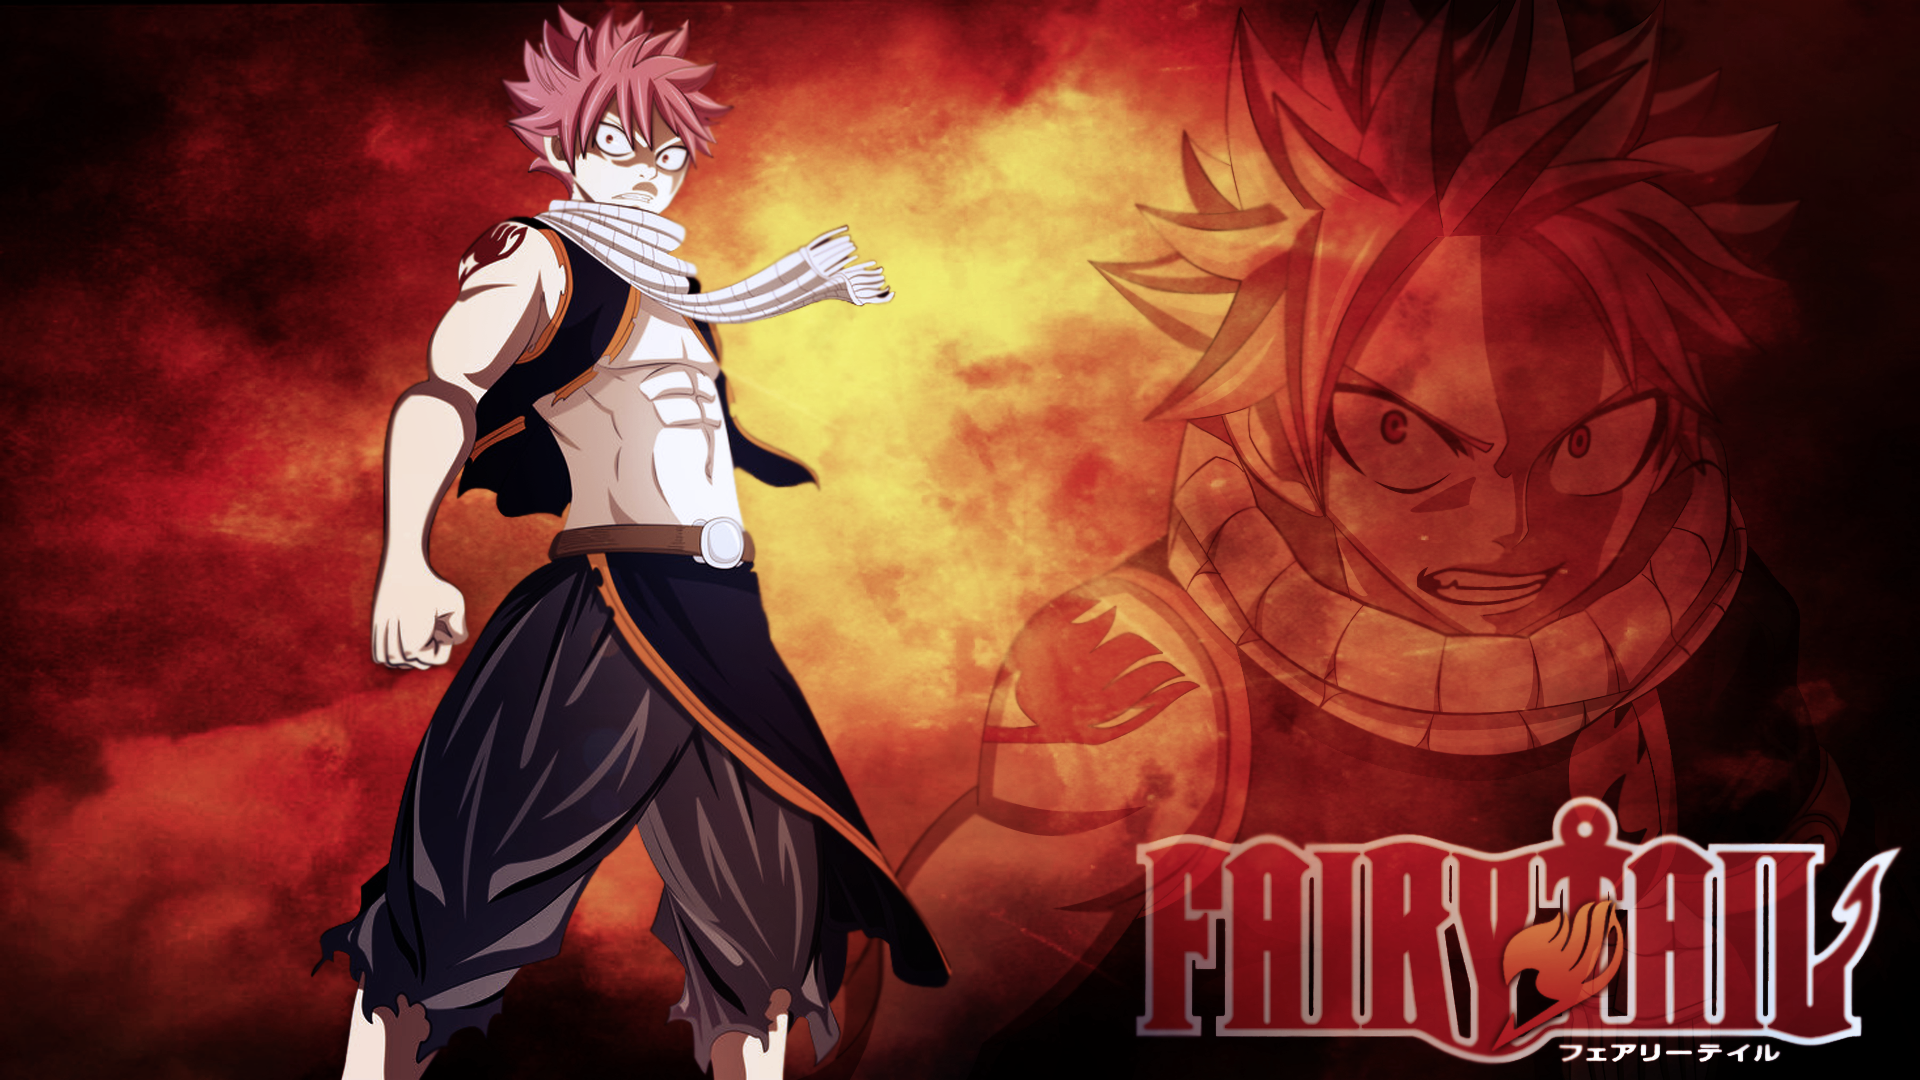 fairy tail wallpaper hd free download